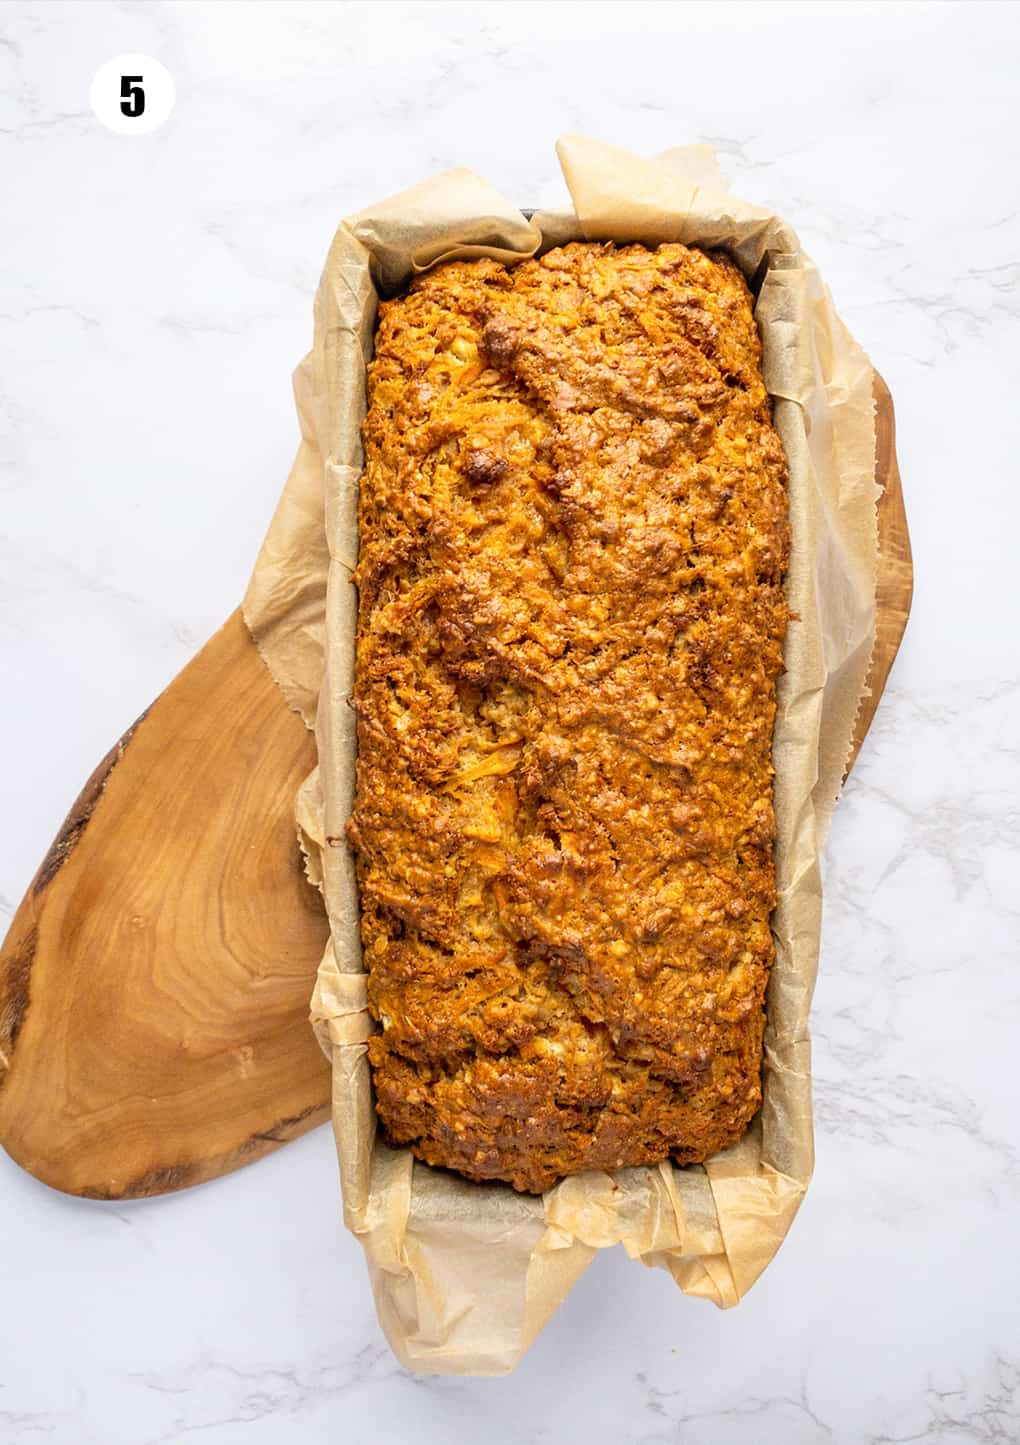 a vegan carrot cake in a loaf pan lined with parchment paper on a marble countertop